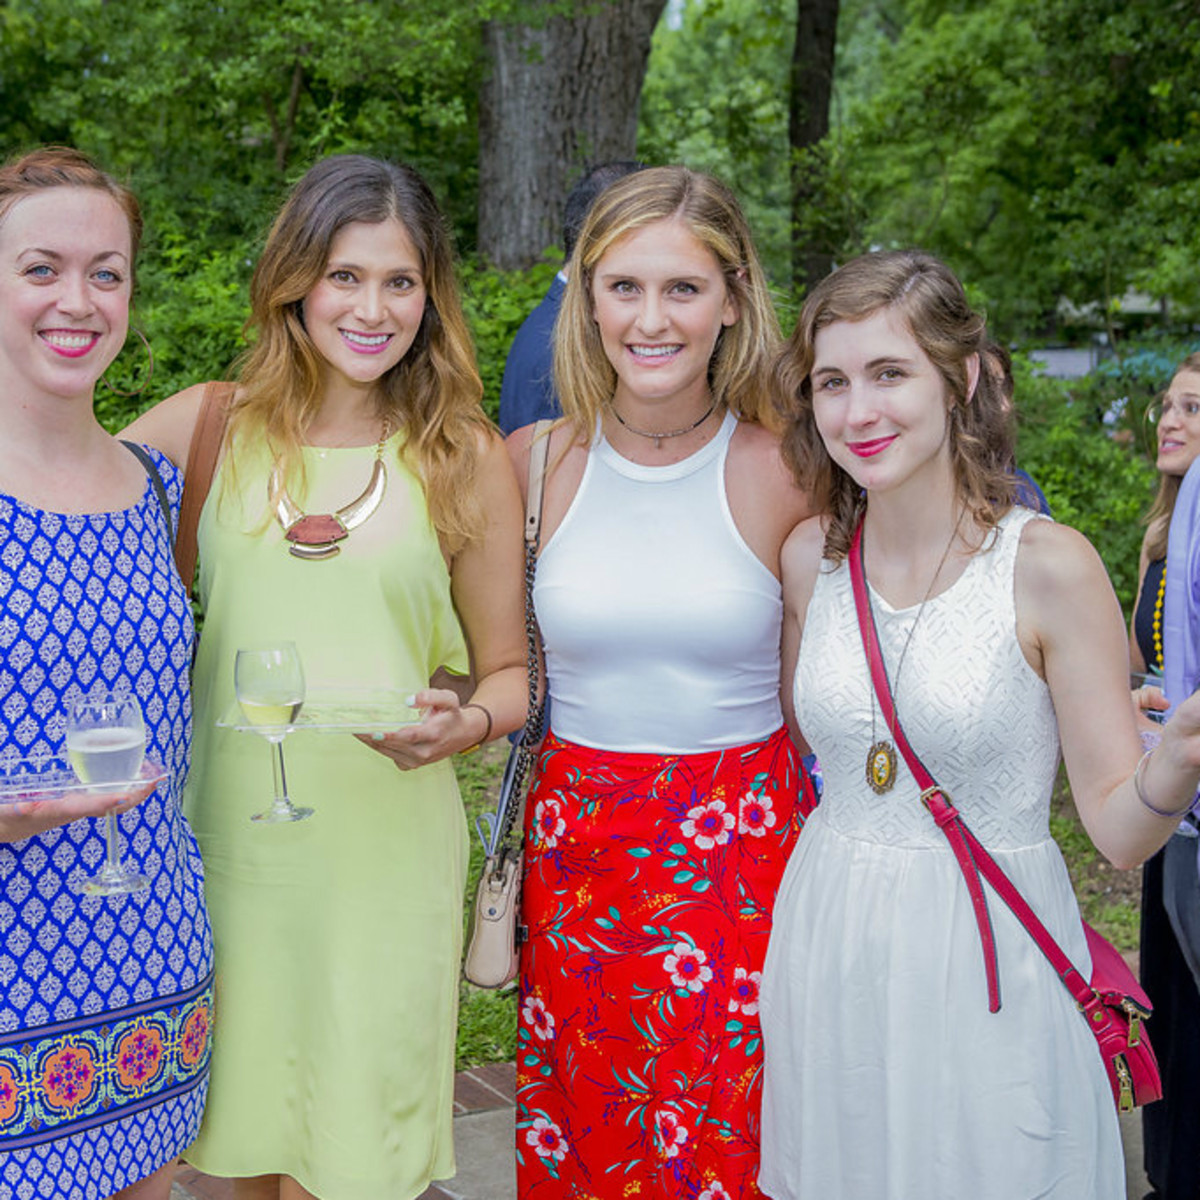 Umlauf Sculpture Garden and Museum Garden Party 2016 CultureMap Austin Molly McManus Kelly Keelan Kelli Blumrosen Nicole Raney